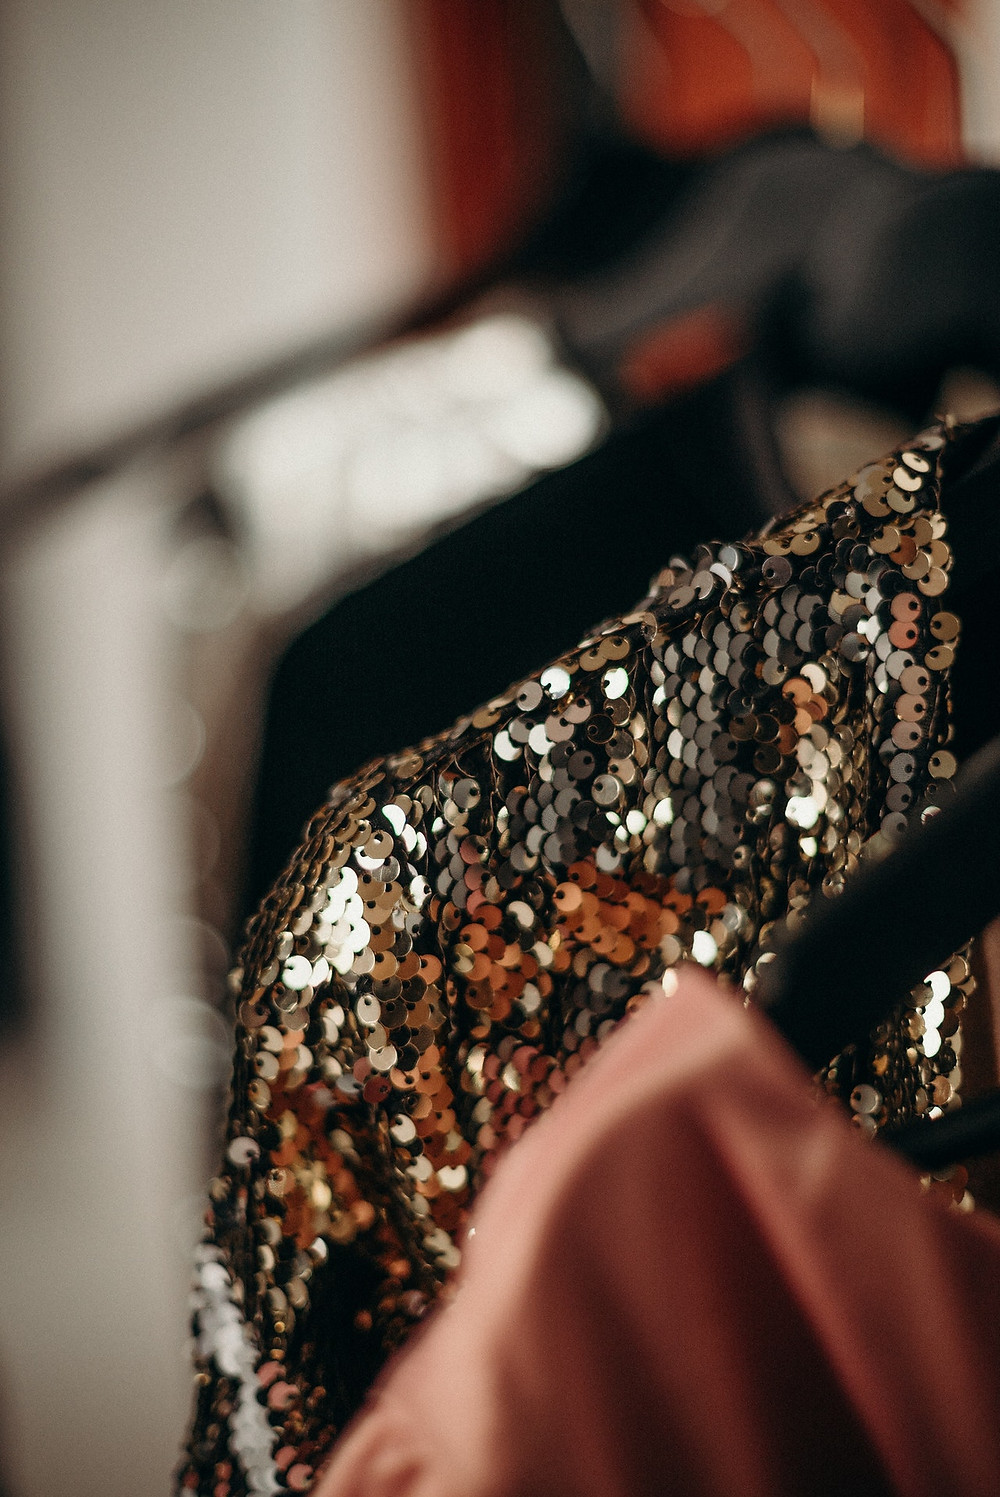 sequin jacket hanging on a hanger, with some other out-of-focus clothes hanging on hangers